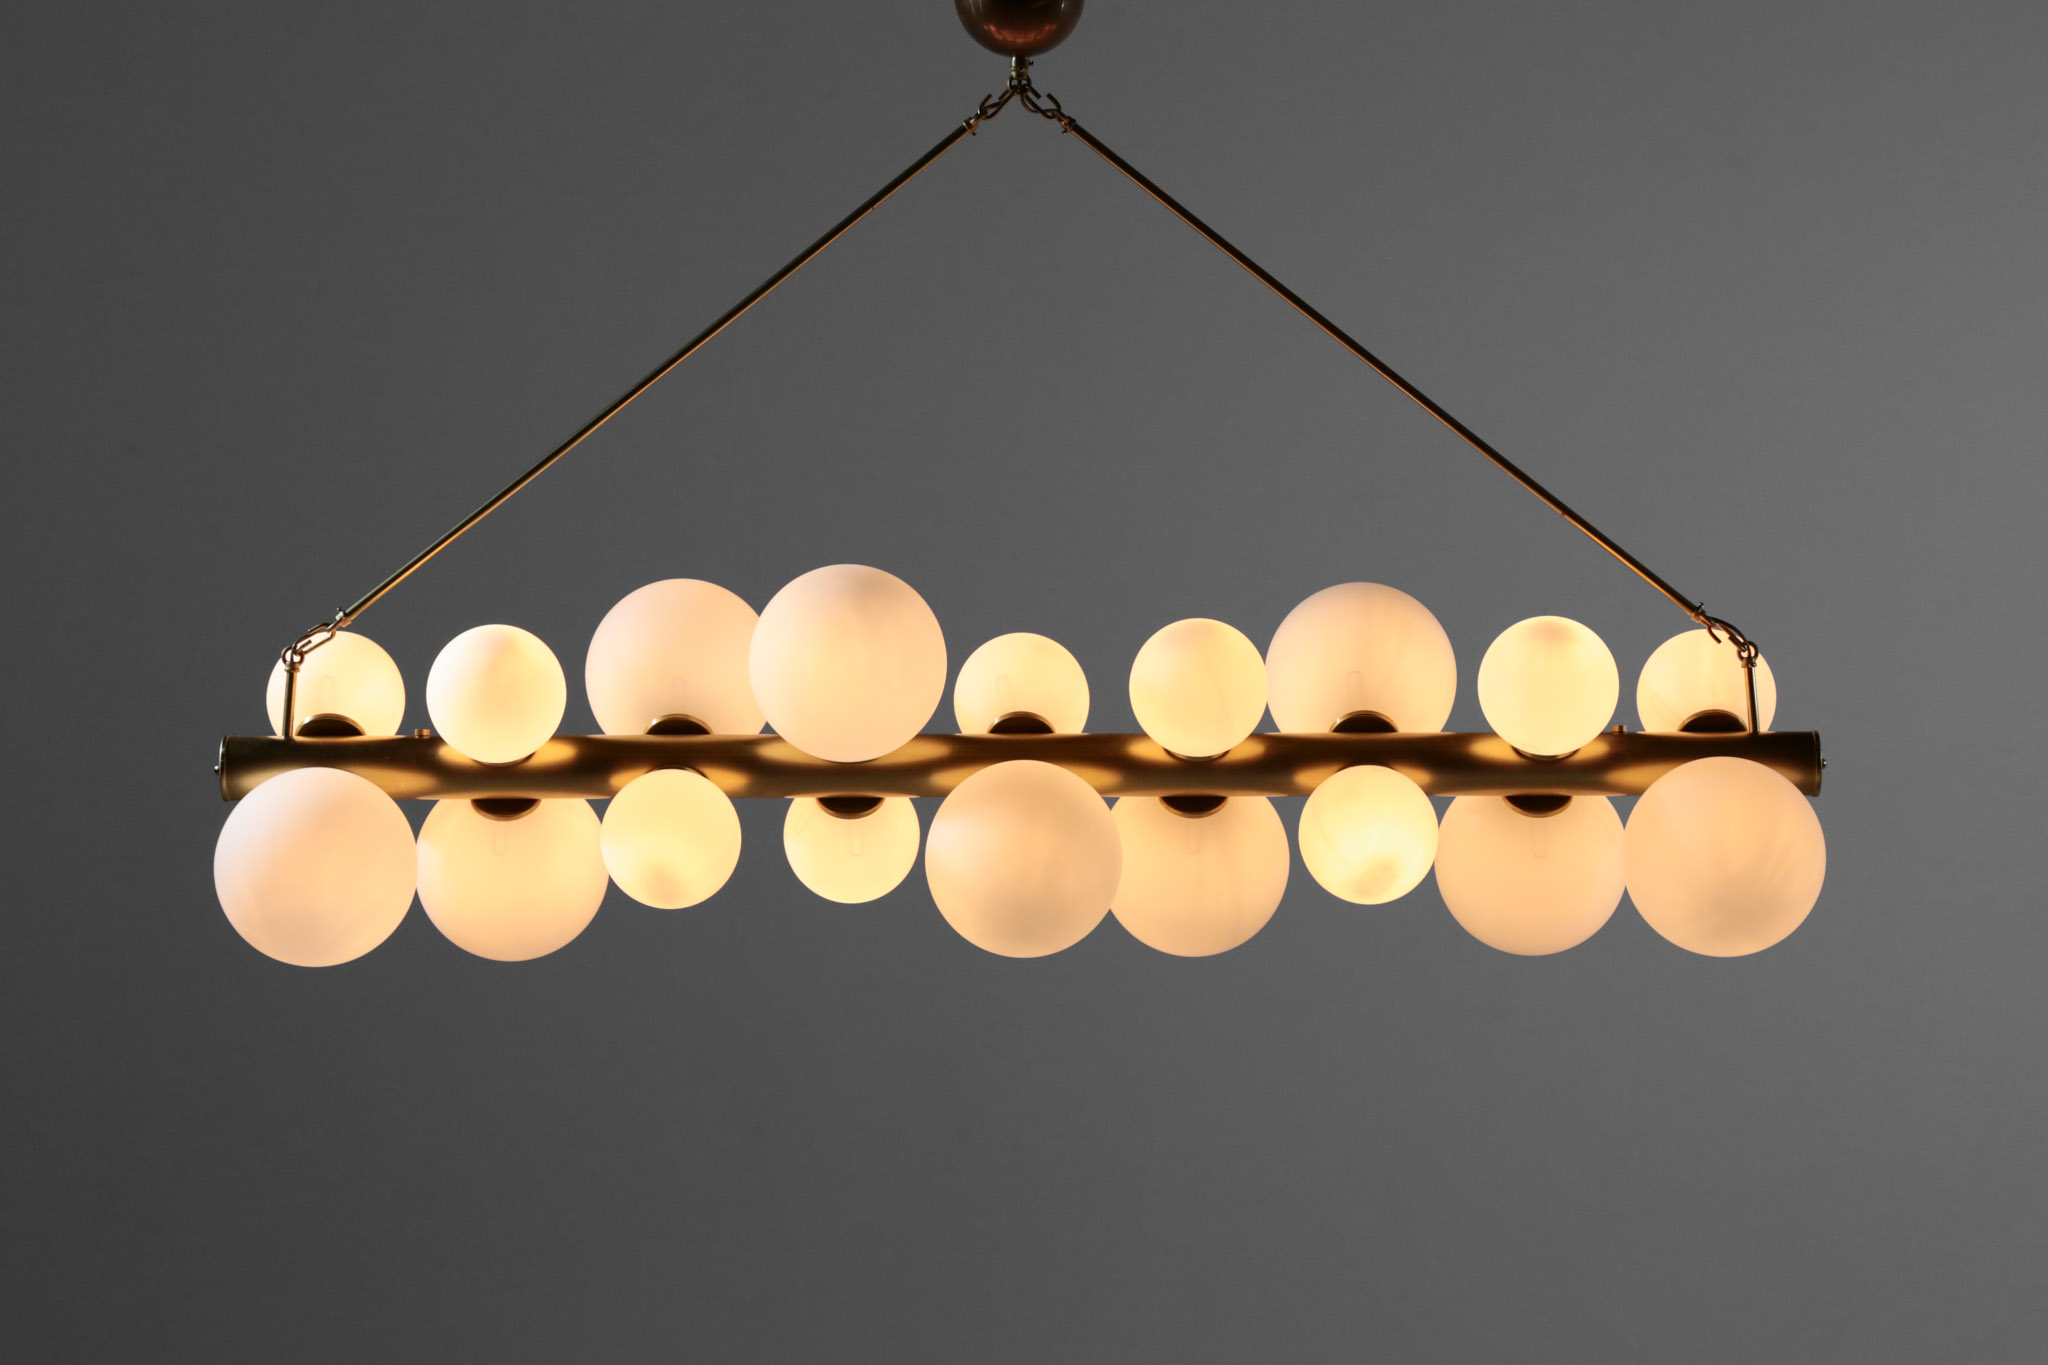 Large Italian Chandelier 18 Lights Opaline Gles Danke